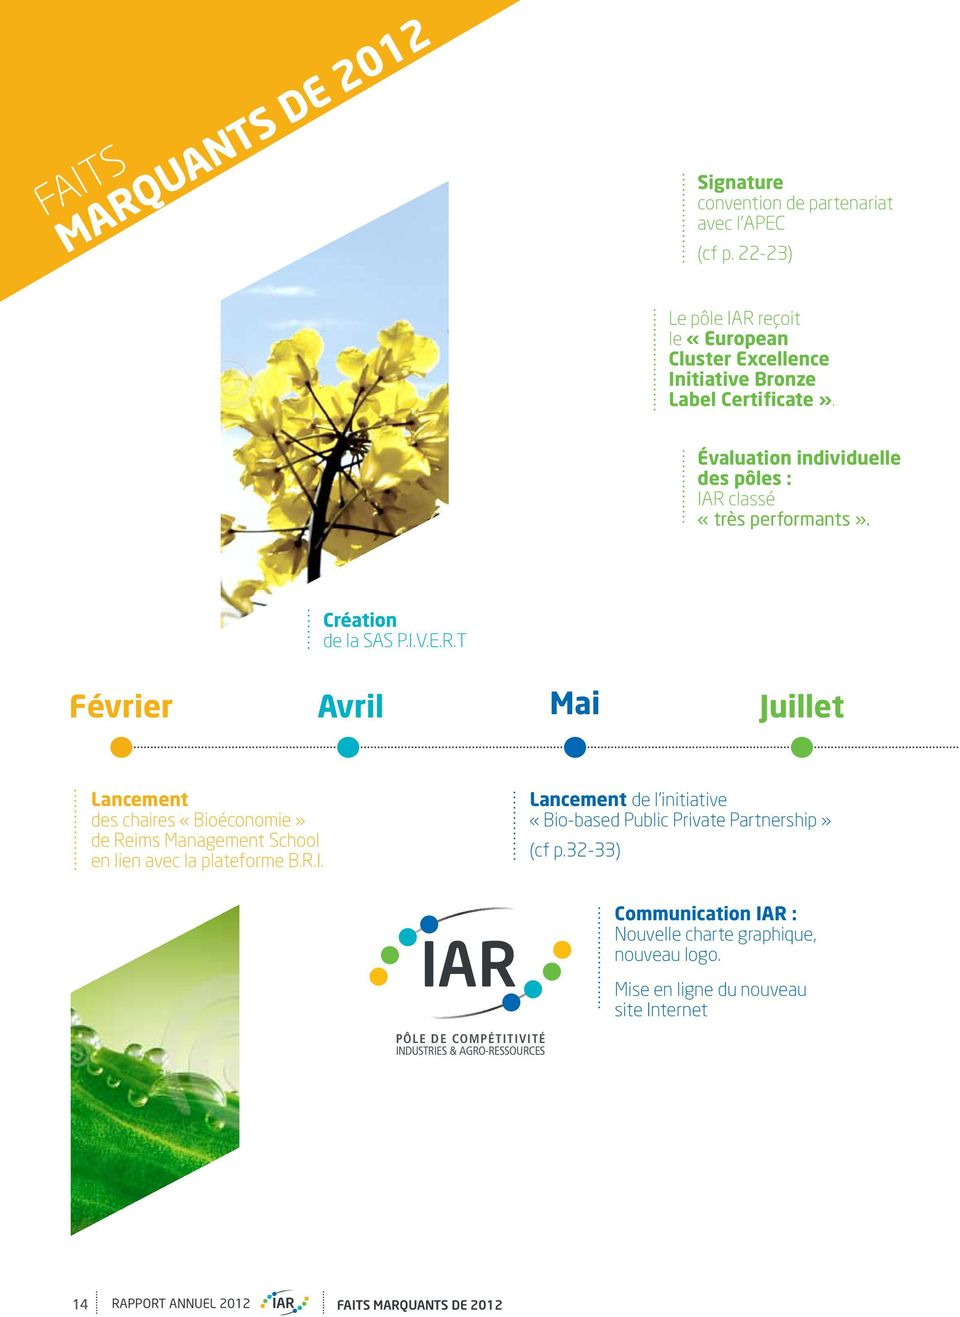 Création de la SAS P.I.V.E.R.T Février Avril Mai Juillet Lancement des chaires «Bioéconomie» de Reims Management School en lien avec la plateforme B.R.I. Lancement de l initiative «Bio-based Public Private Partnership» (cf p.